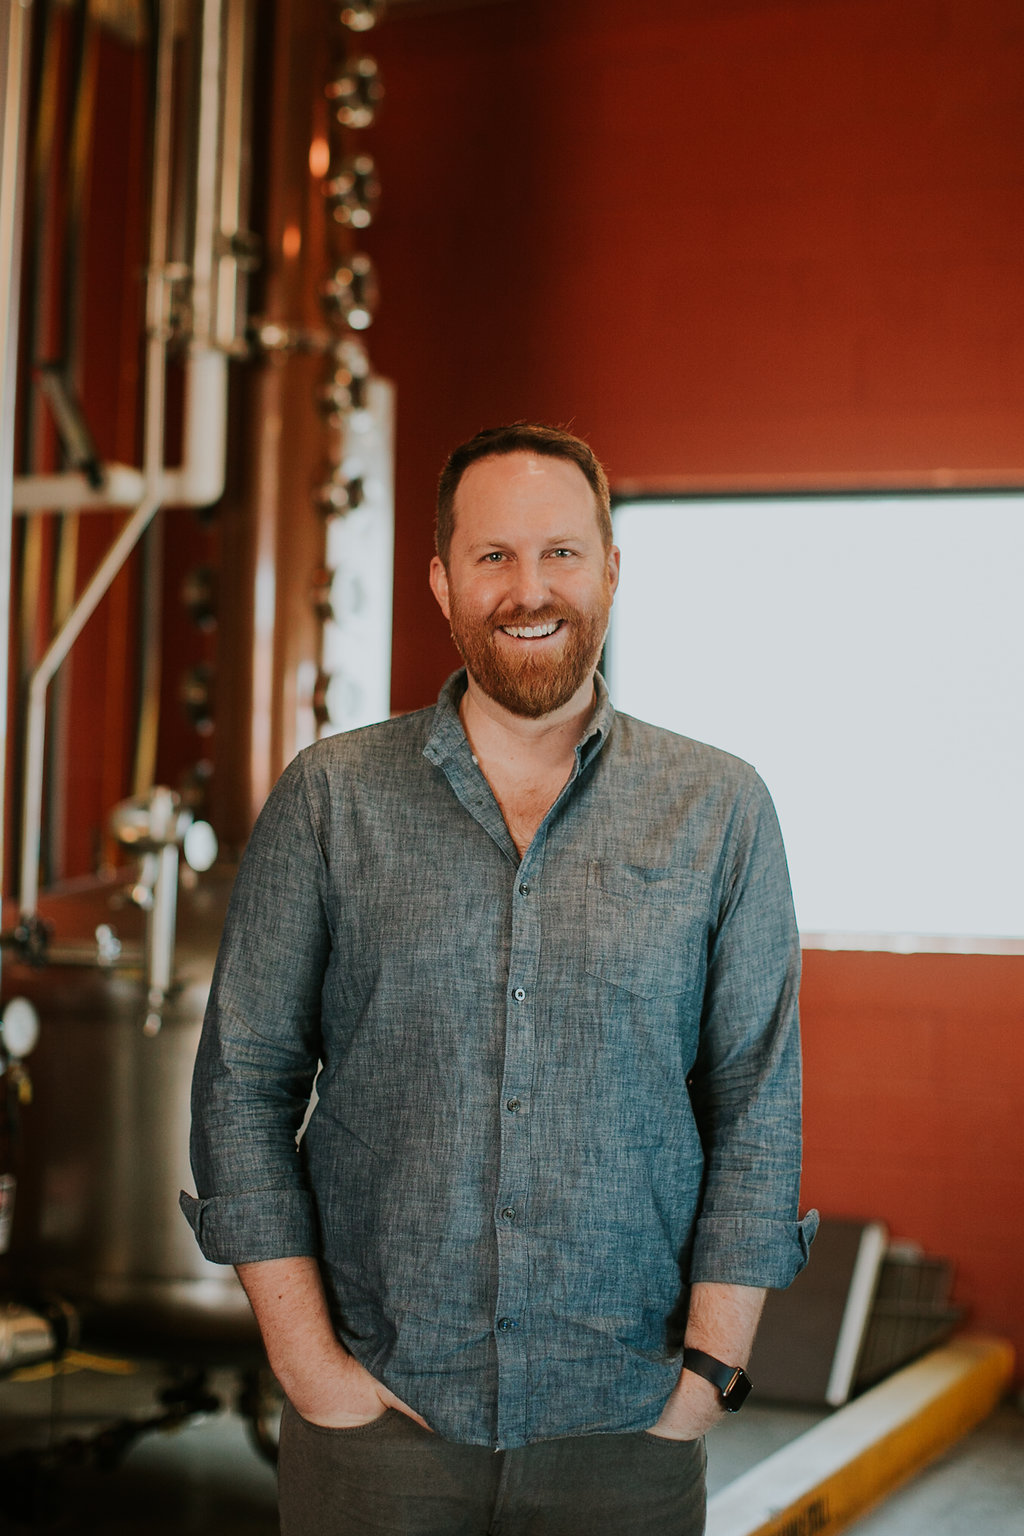 Colin Blake  Colin Blake joined the Flavorman and Moonshine University team in 2012. With history as a researcher and writer for spirits and cocktails, he is the Director of Spirits Education at Moonshine University, which is the first custom built educational distillery in the US. Blake uses his background in film production and comedy to make expertly curated courses with entertaining presentation that teach the intricacies of the distilling and spirits world. Blake was also one of the co-creators of Stave & Thief Society, the only industry backed bourbon certification program.